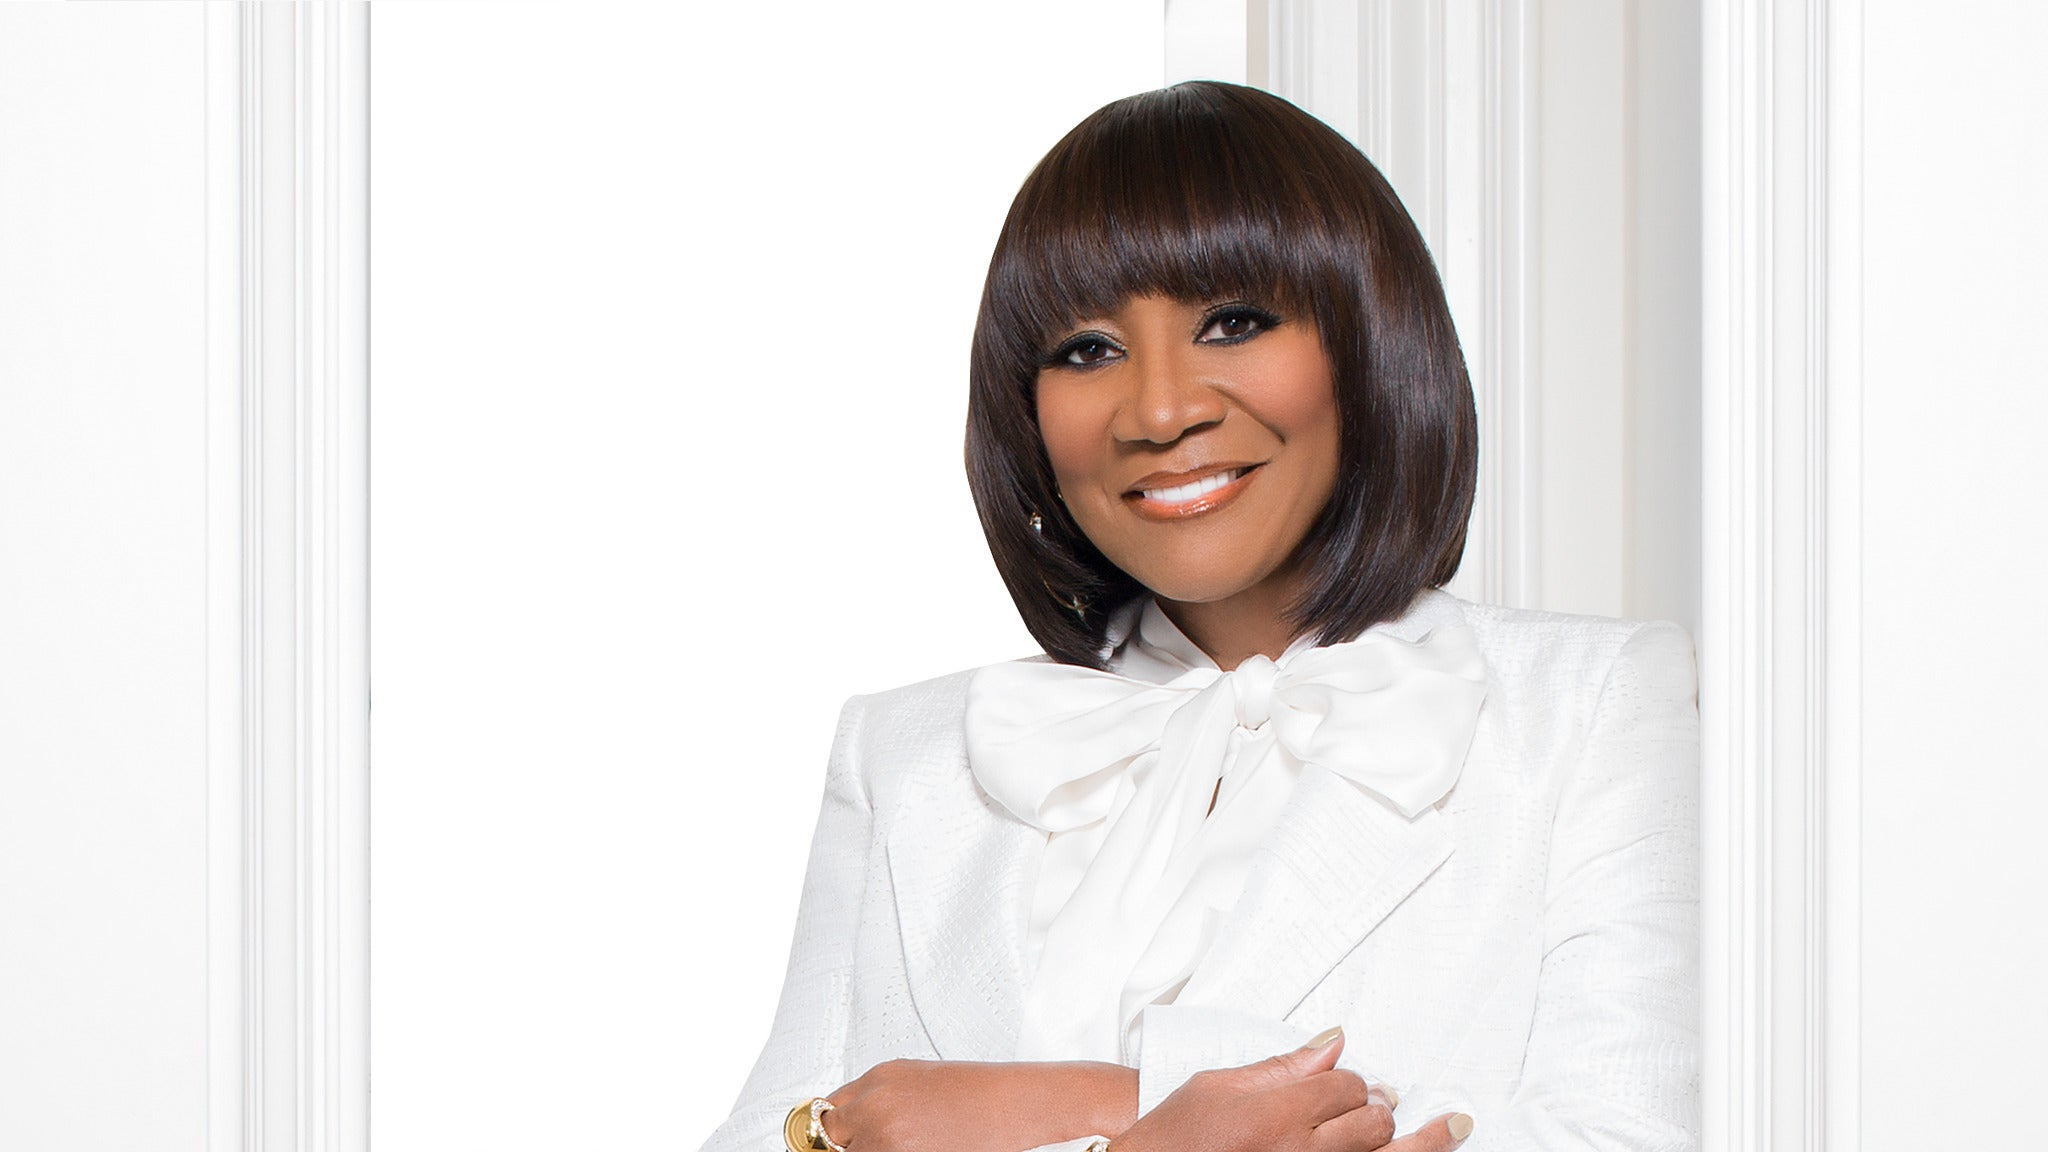 Patti LaBelle & Queen Latifah at Los Angeles County Fair